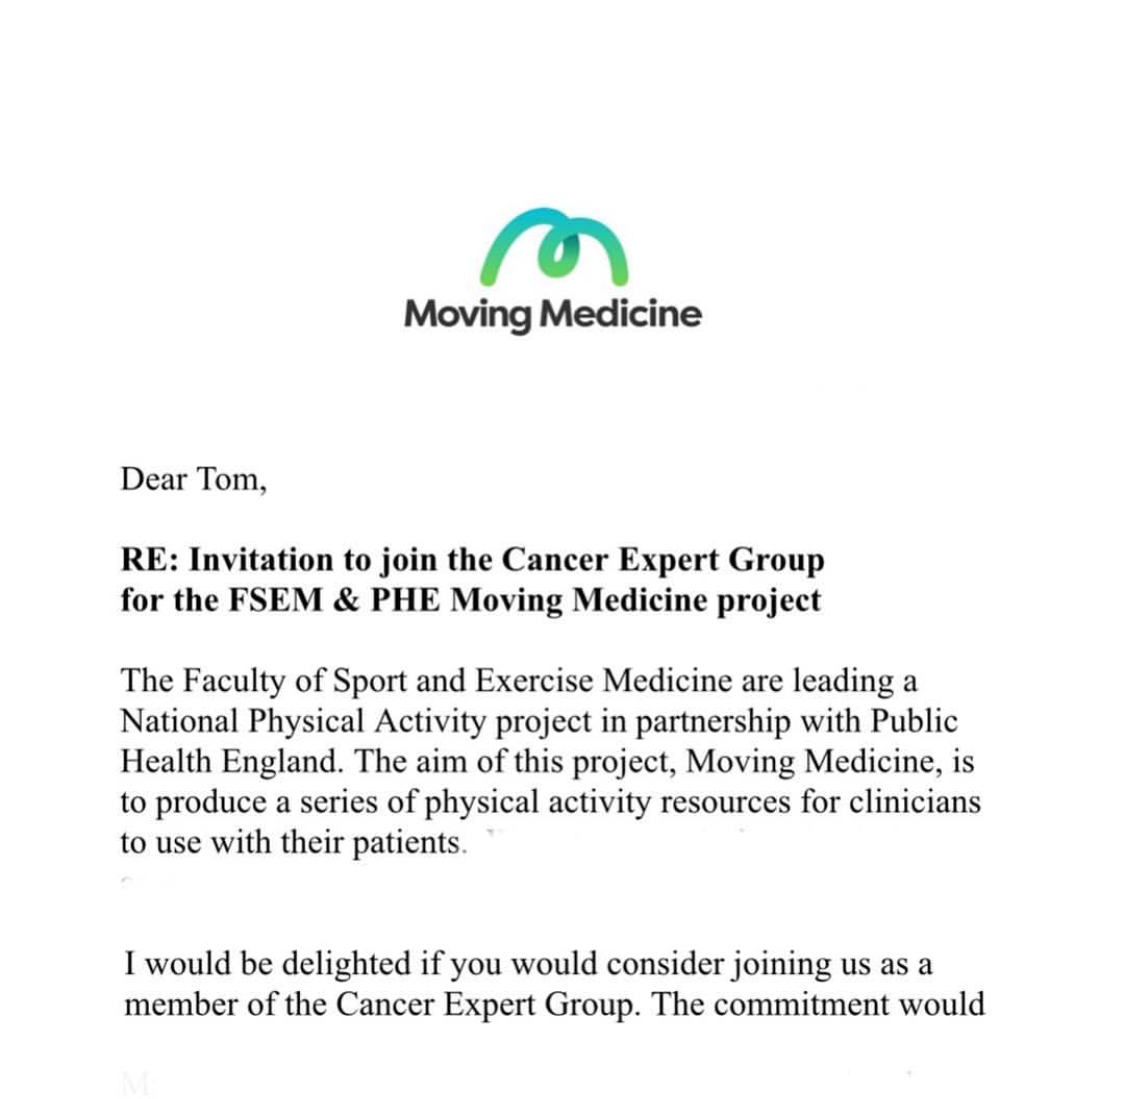 Invitation to join the Moving Medicine Cancer Expert Group